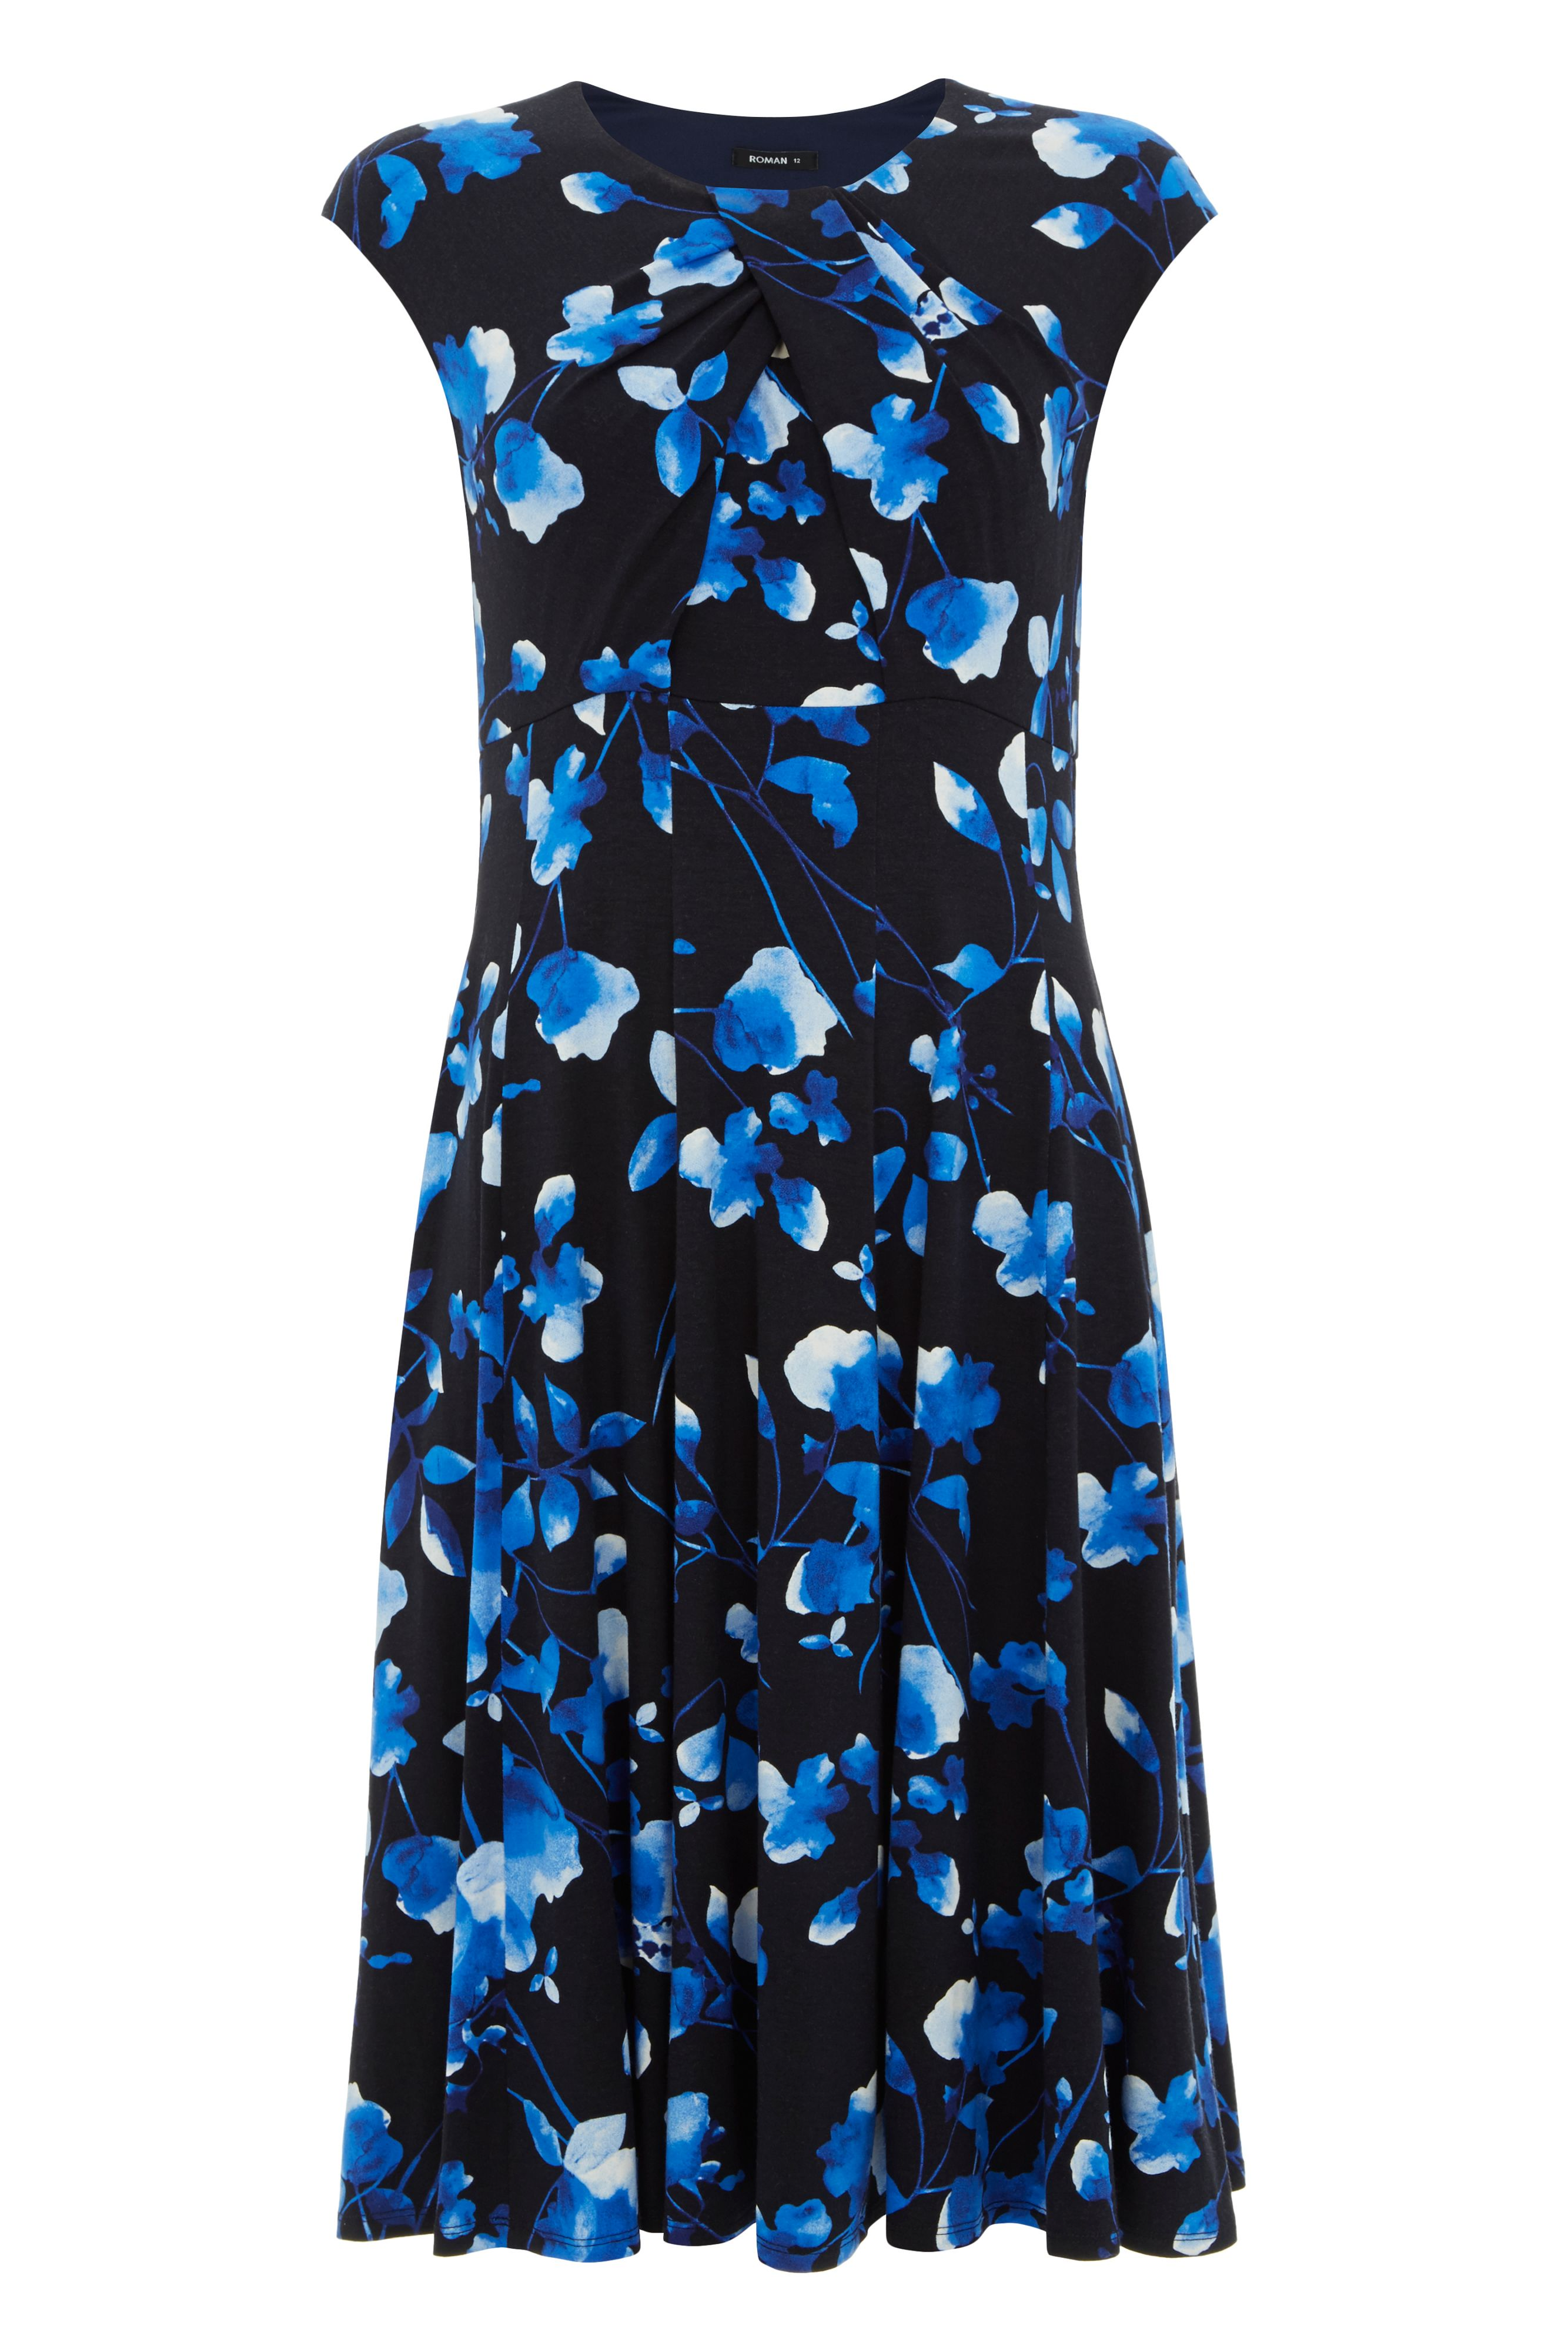 Roman Originals Fit and Flare Floral Print Dress, Blue